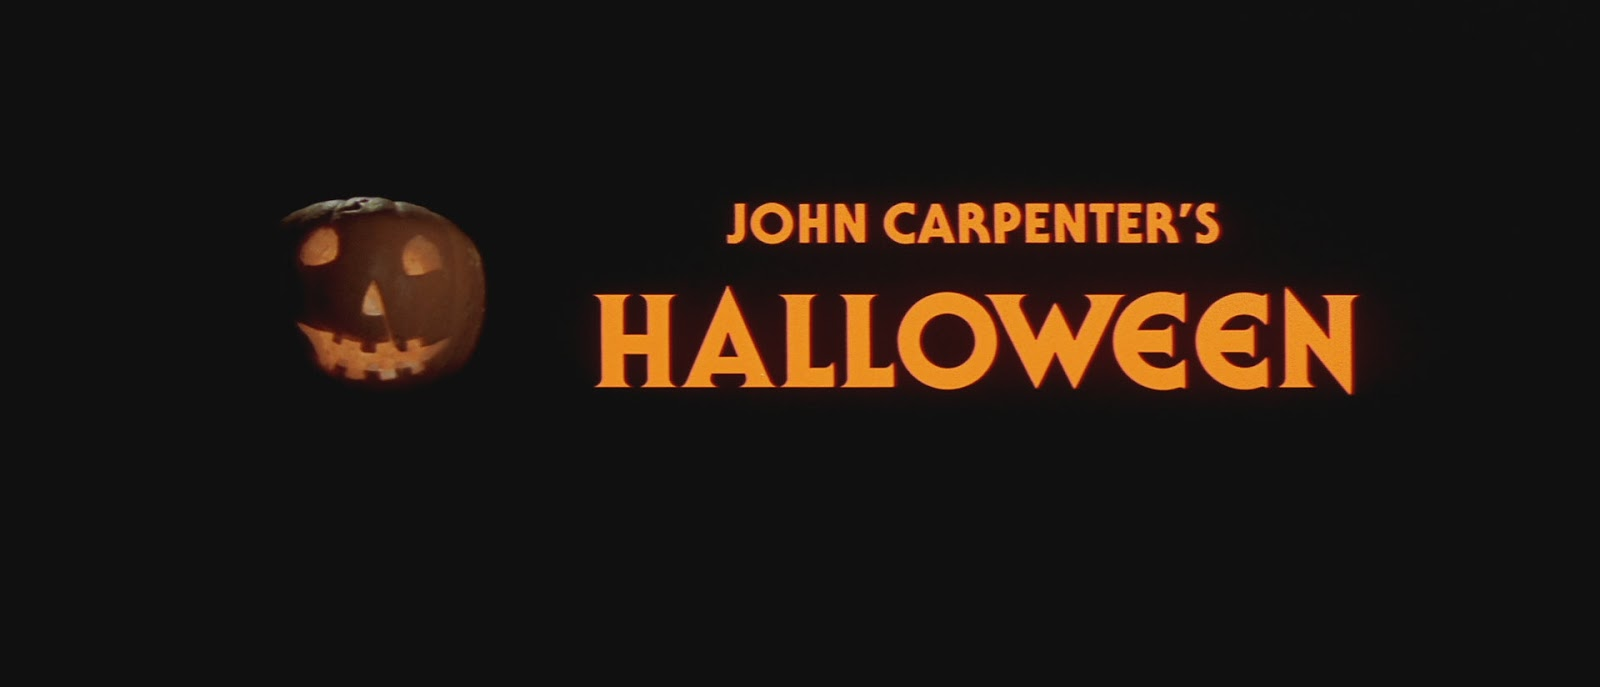 pretty much teasing all of the most memorable and creepy scenes in the film watch the original trailer for john carpenters halloween - Halloween Trailers